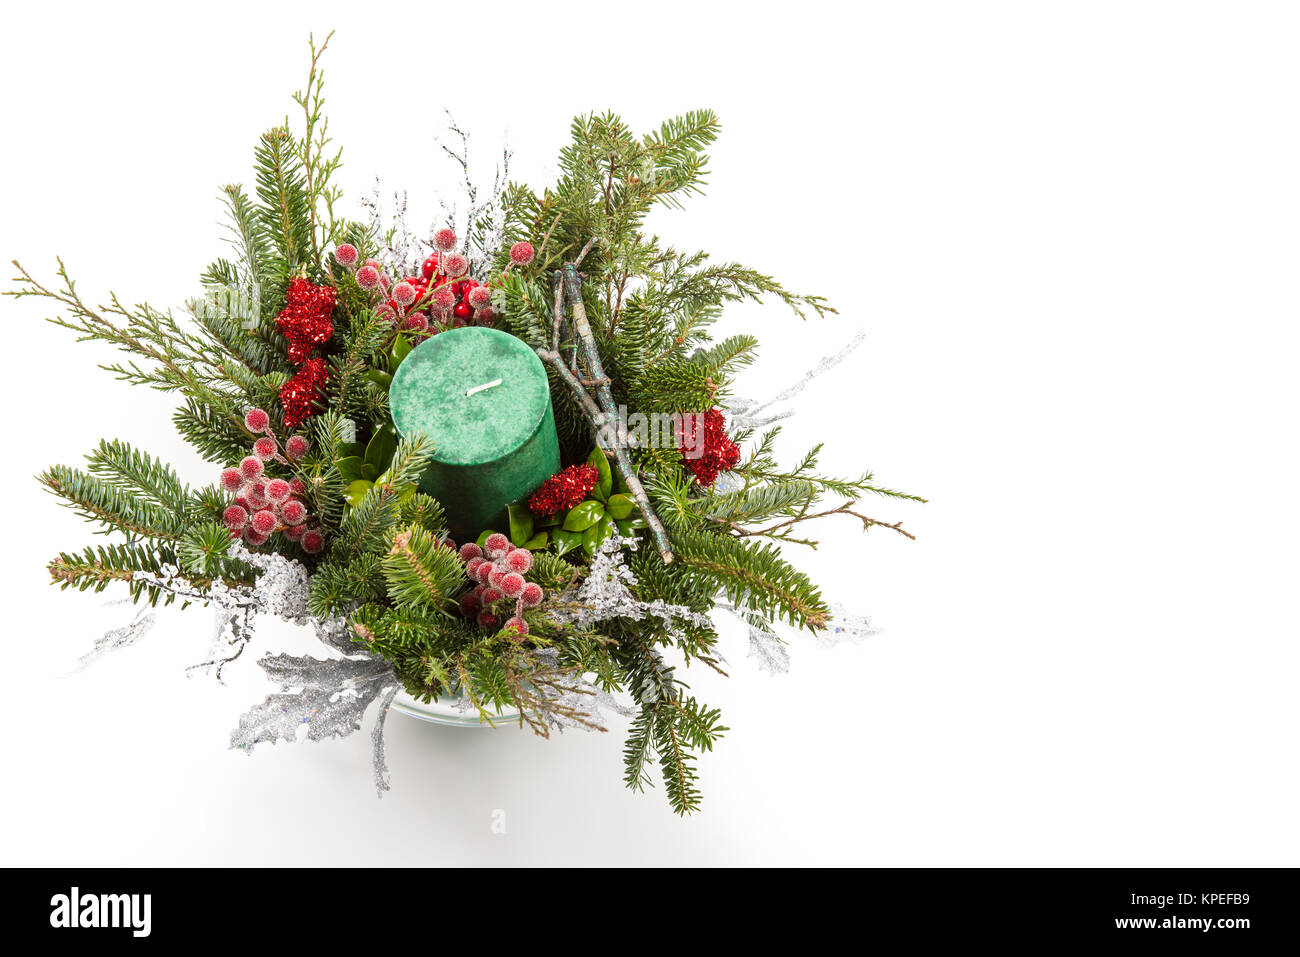 Artificial Christmas Tree With Snow And Pine Cones